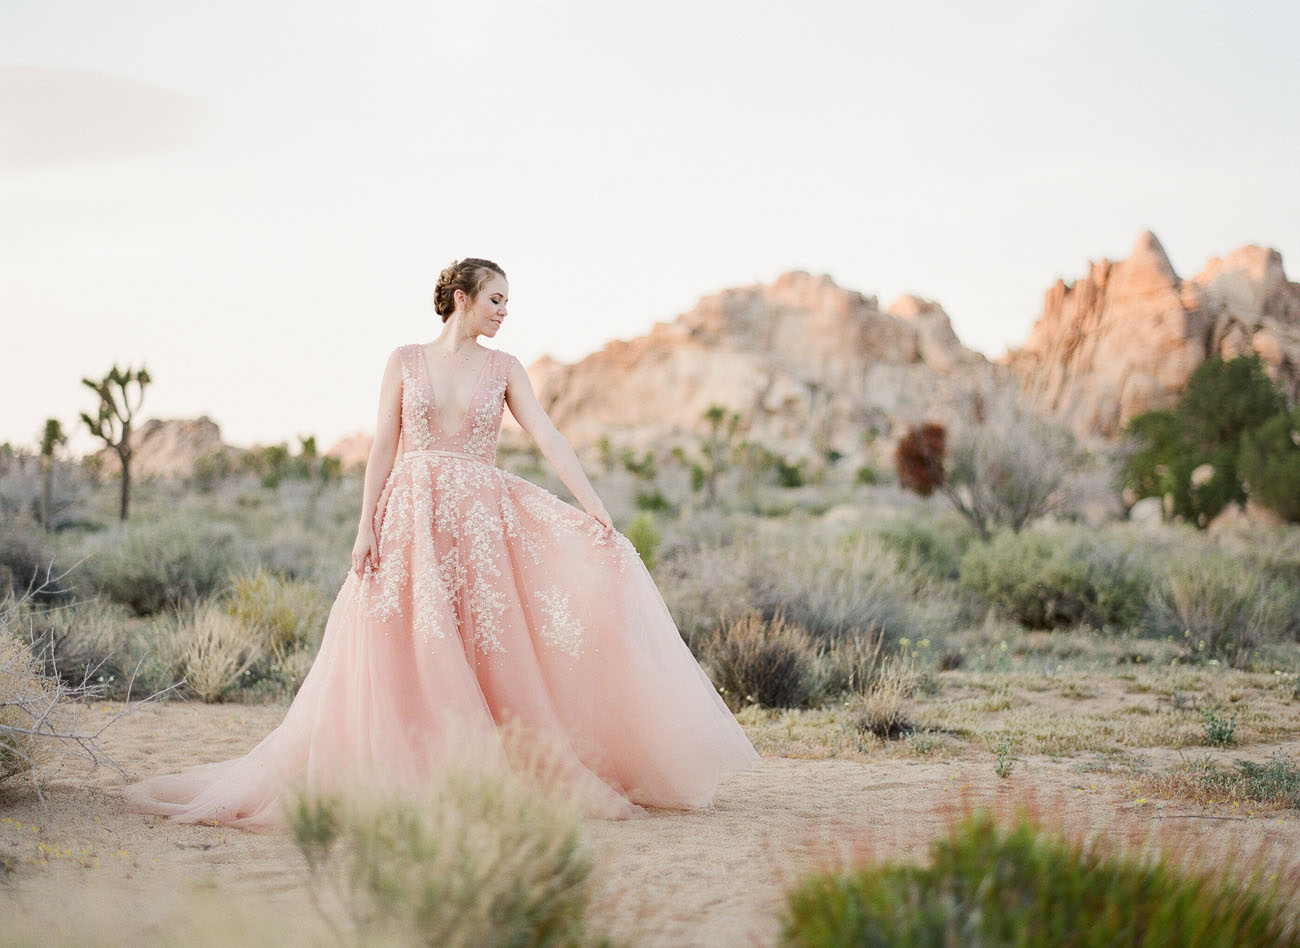 A Dreamy Pink Wedding Dress captured in Joshua Tree